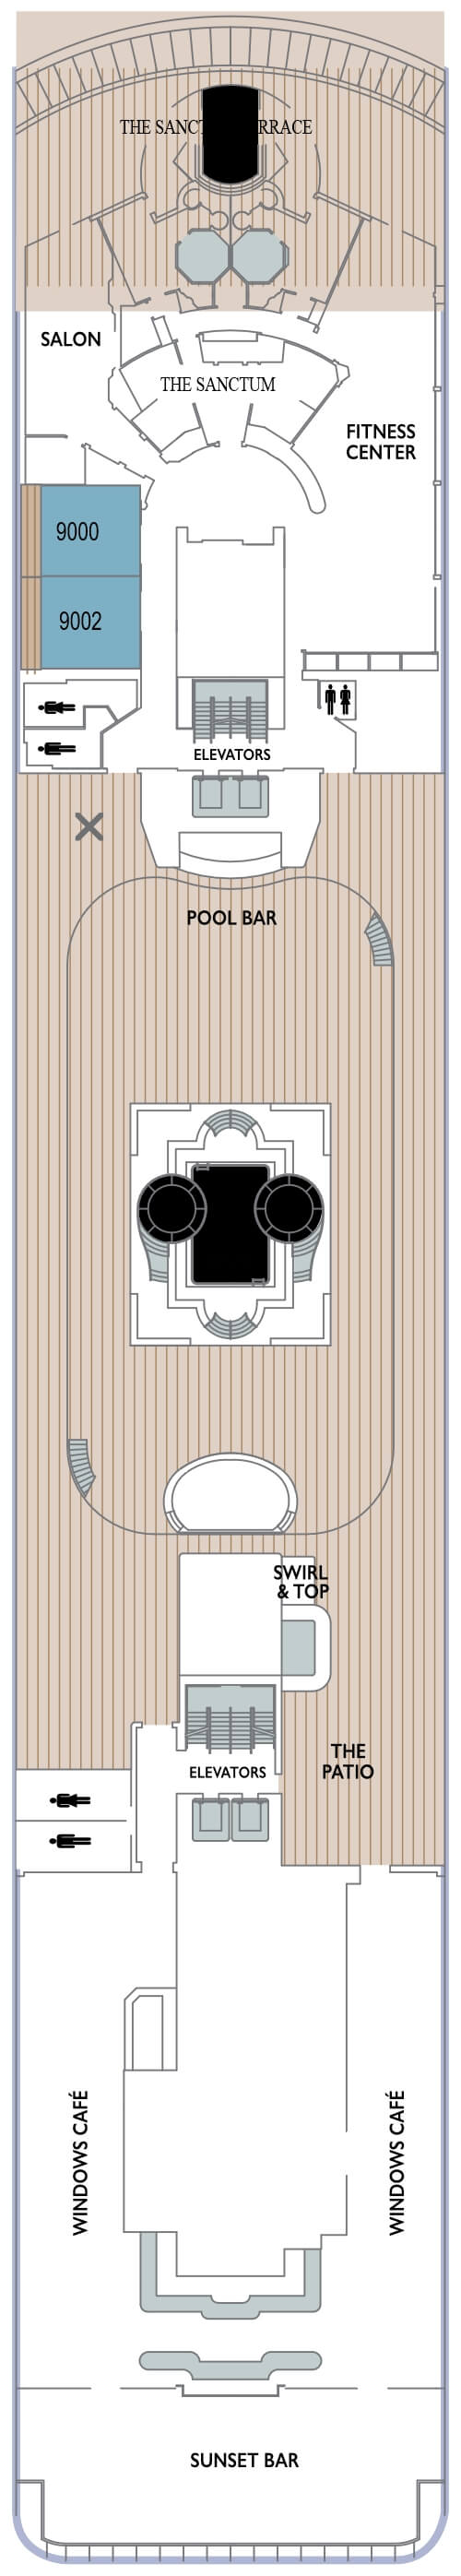 Azamara Pursuit Deck 9 layout